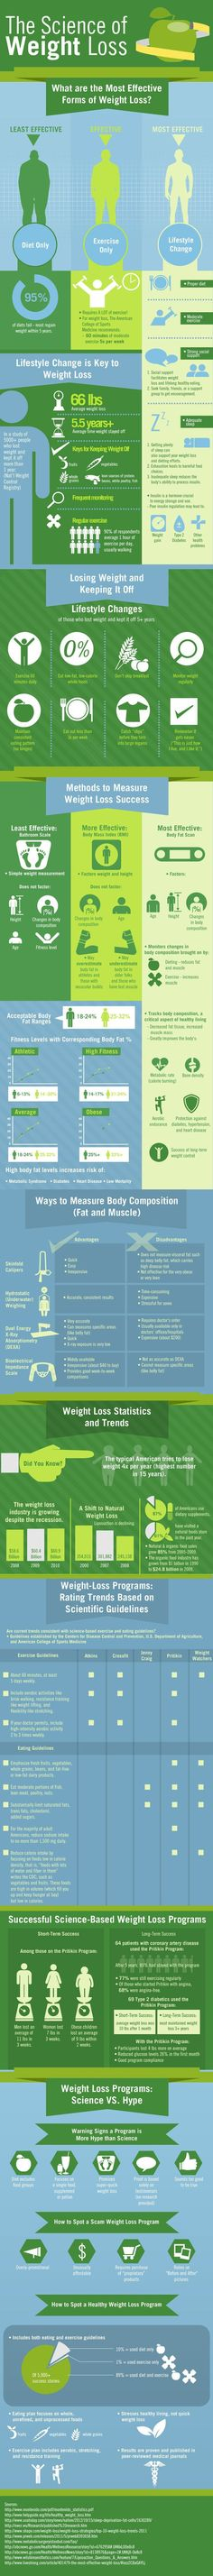 See more here ► https://www.youtube.com/watch?v=3qKhPjyBqW0 Tags: male weight loss tips, diet tips for weight loss, weight loss tips in marathi - Todays-Fitness-The-Science-of-Weight-Loss.jpg 736×8,910 pixels #exercise #diet #workout #fitness #health